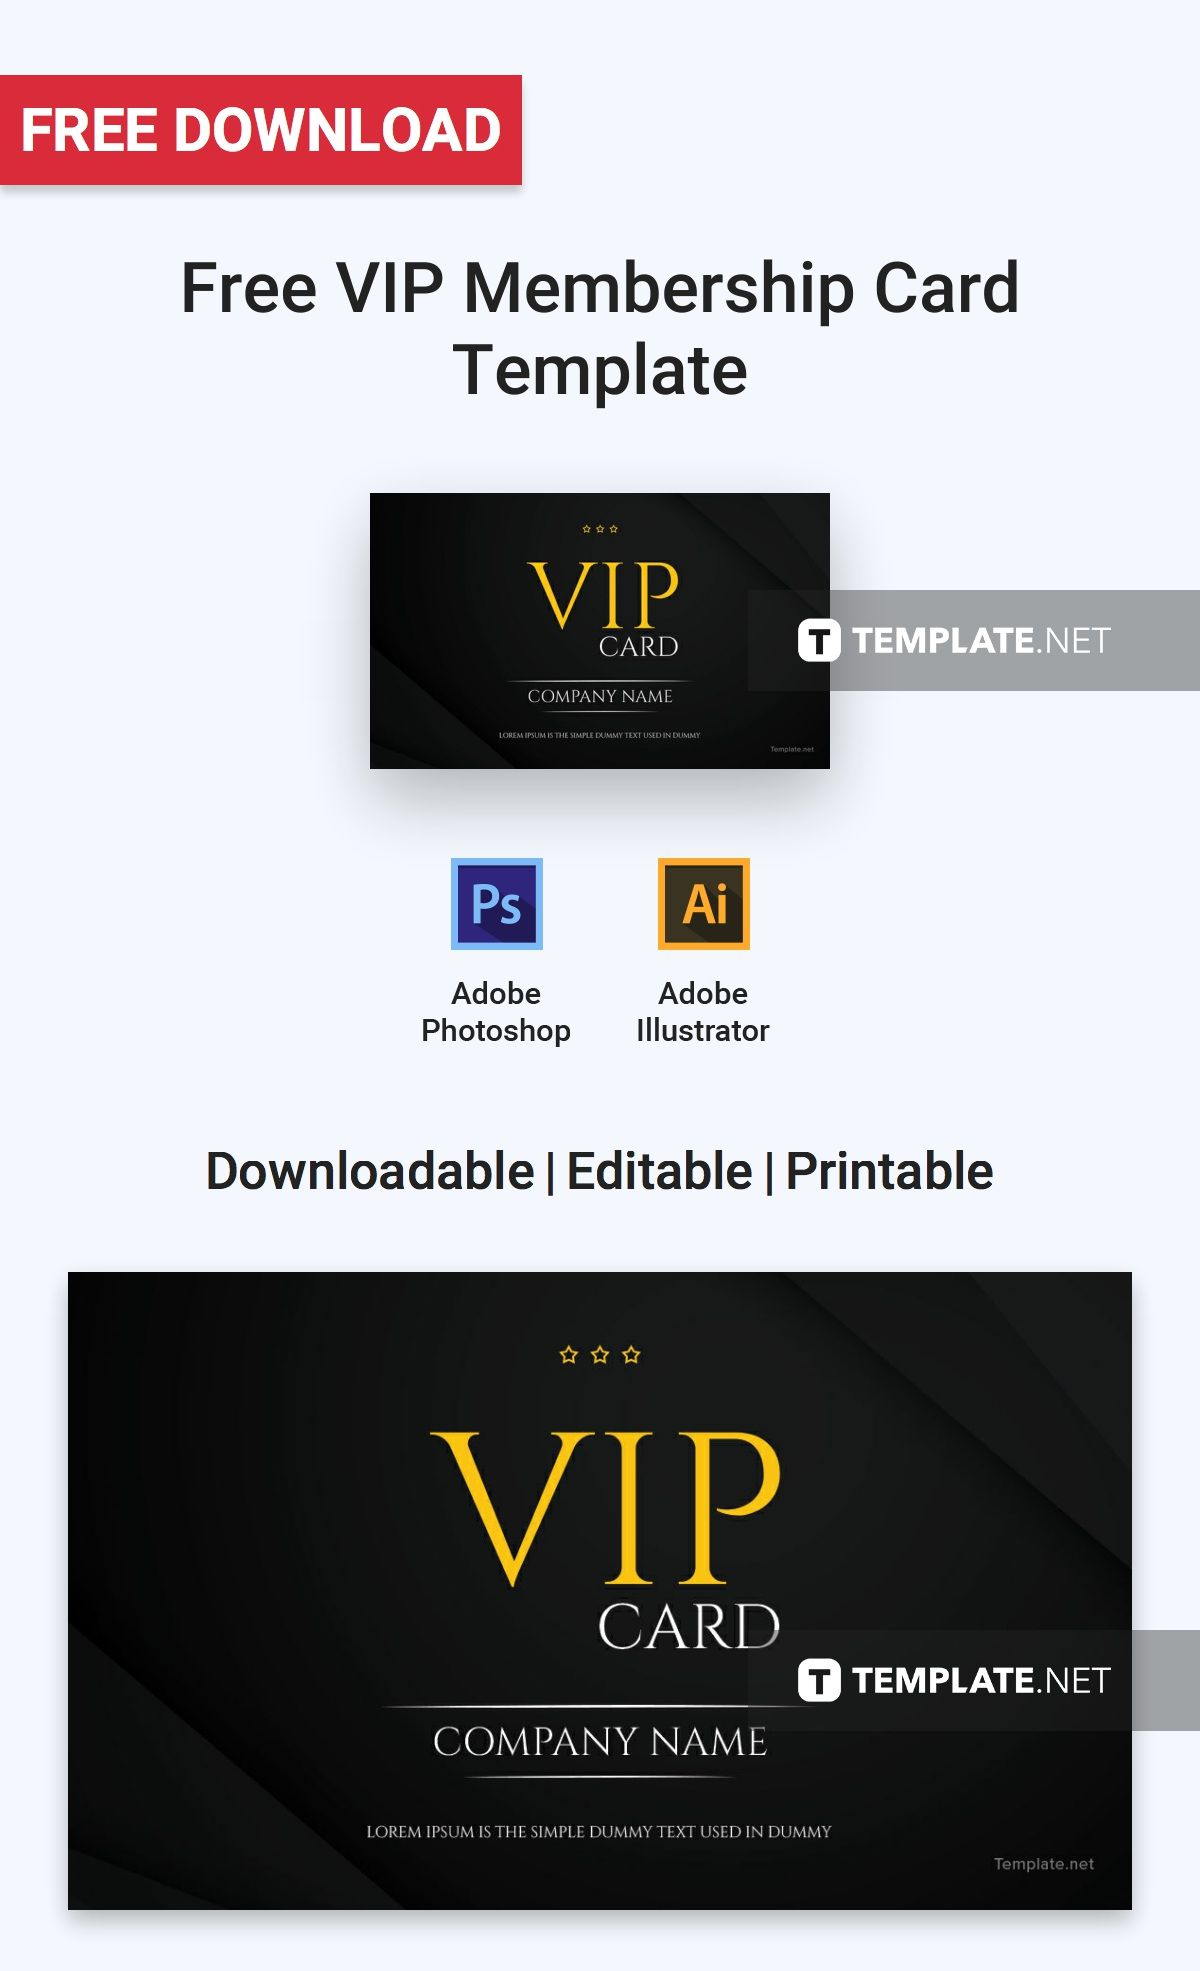 Free Vip Membership Card Template Word Doc Psd Apple Mac Pages Illustrator Publisher Membership Card Vip Card Cards